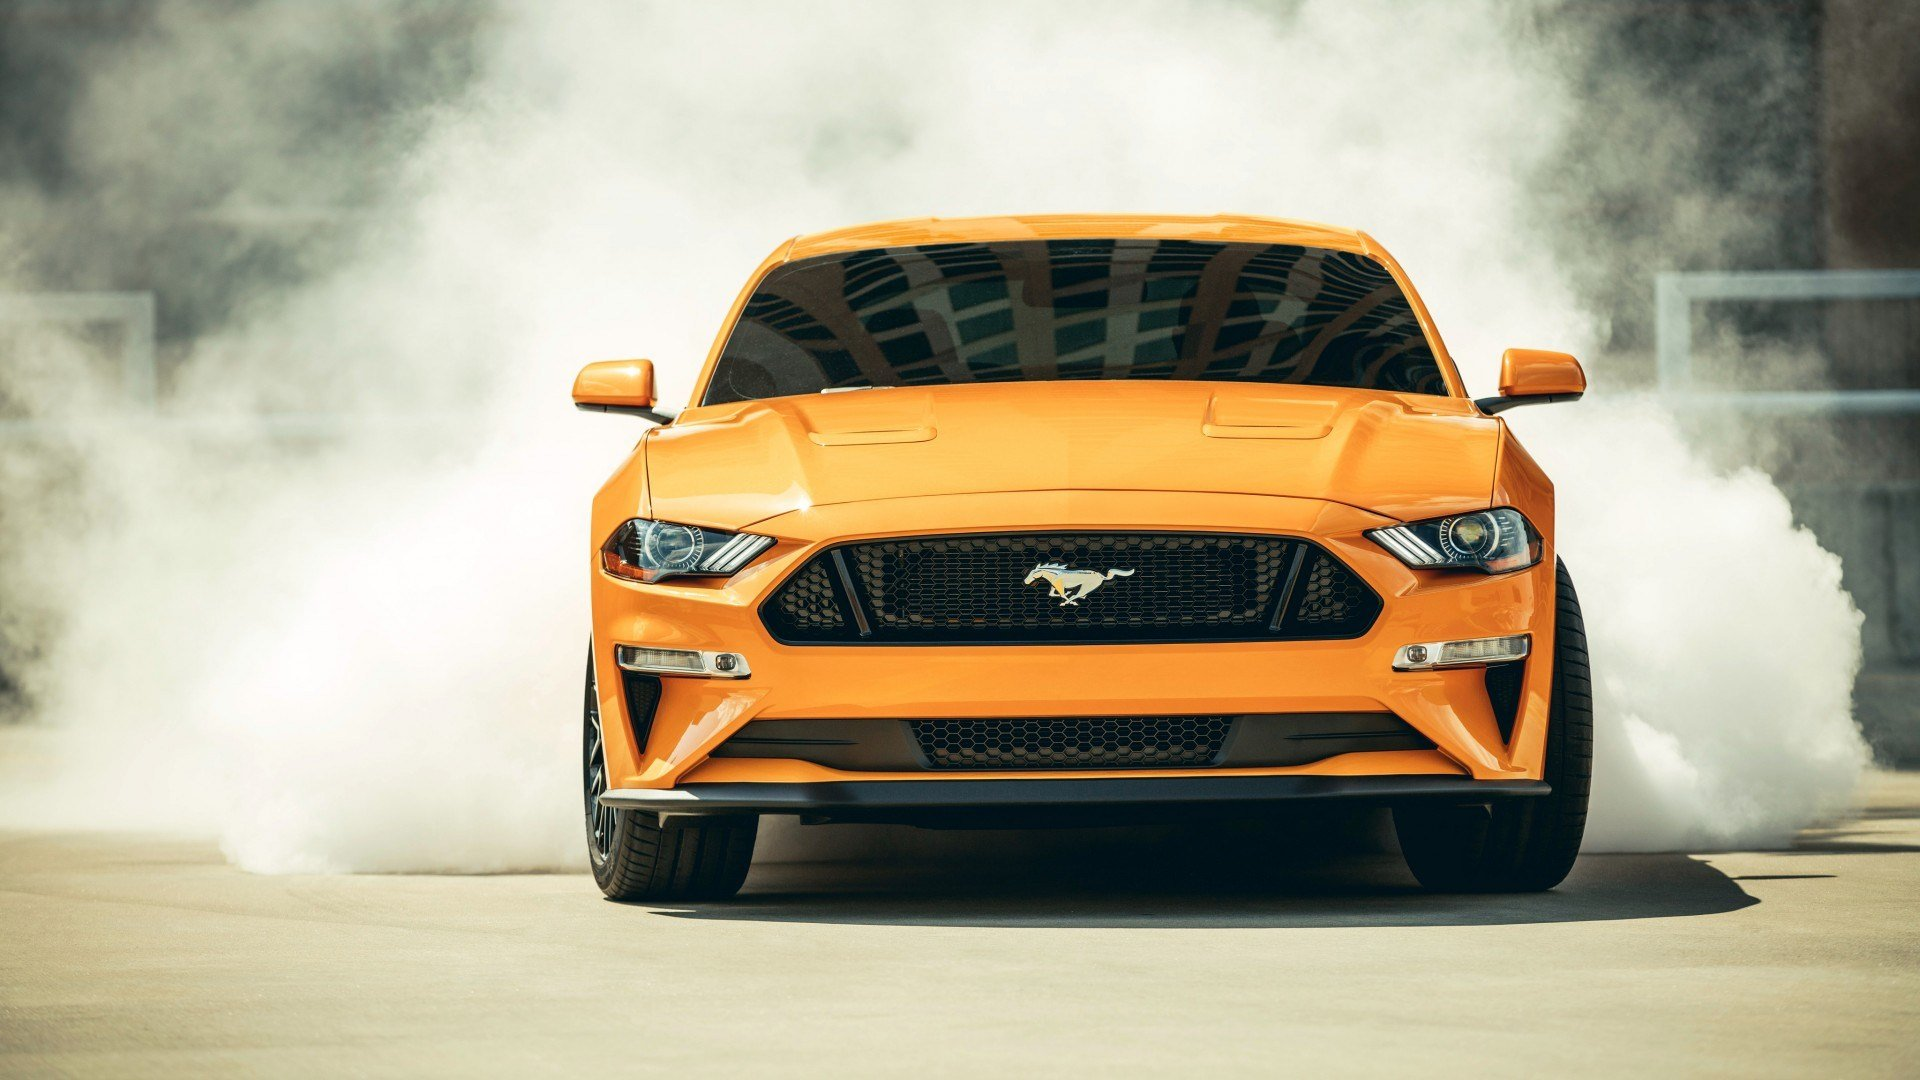 Latest Wallpaper Ford Mustang 2018 Hd 4K Automotive Cars Free Download